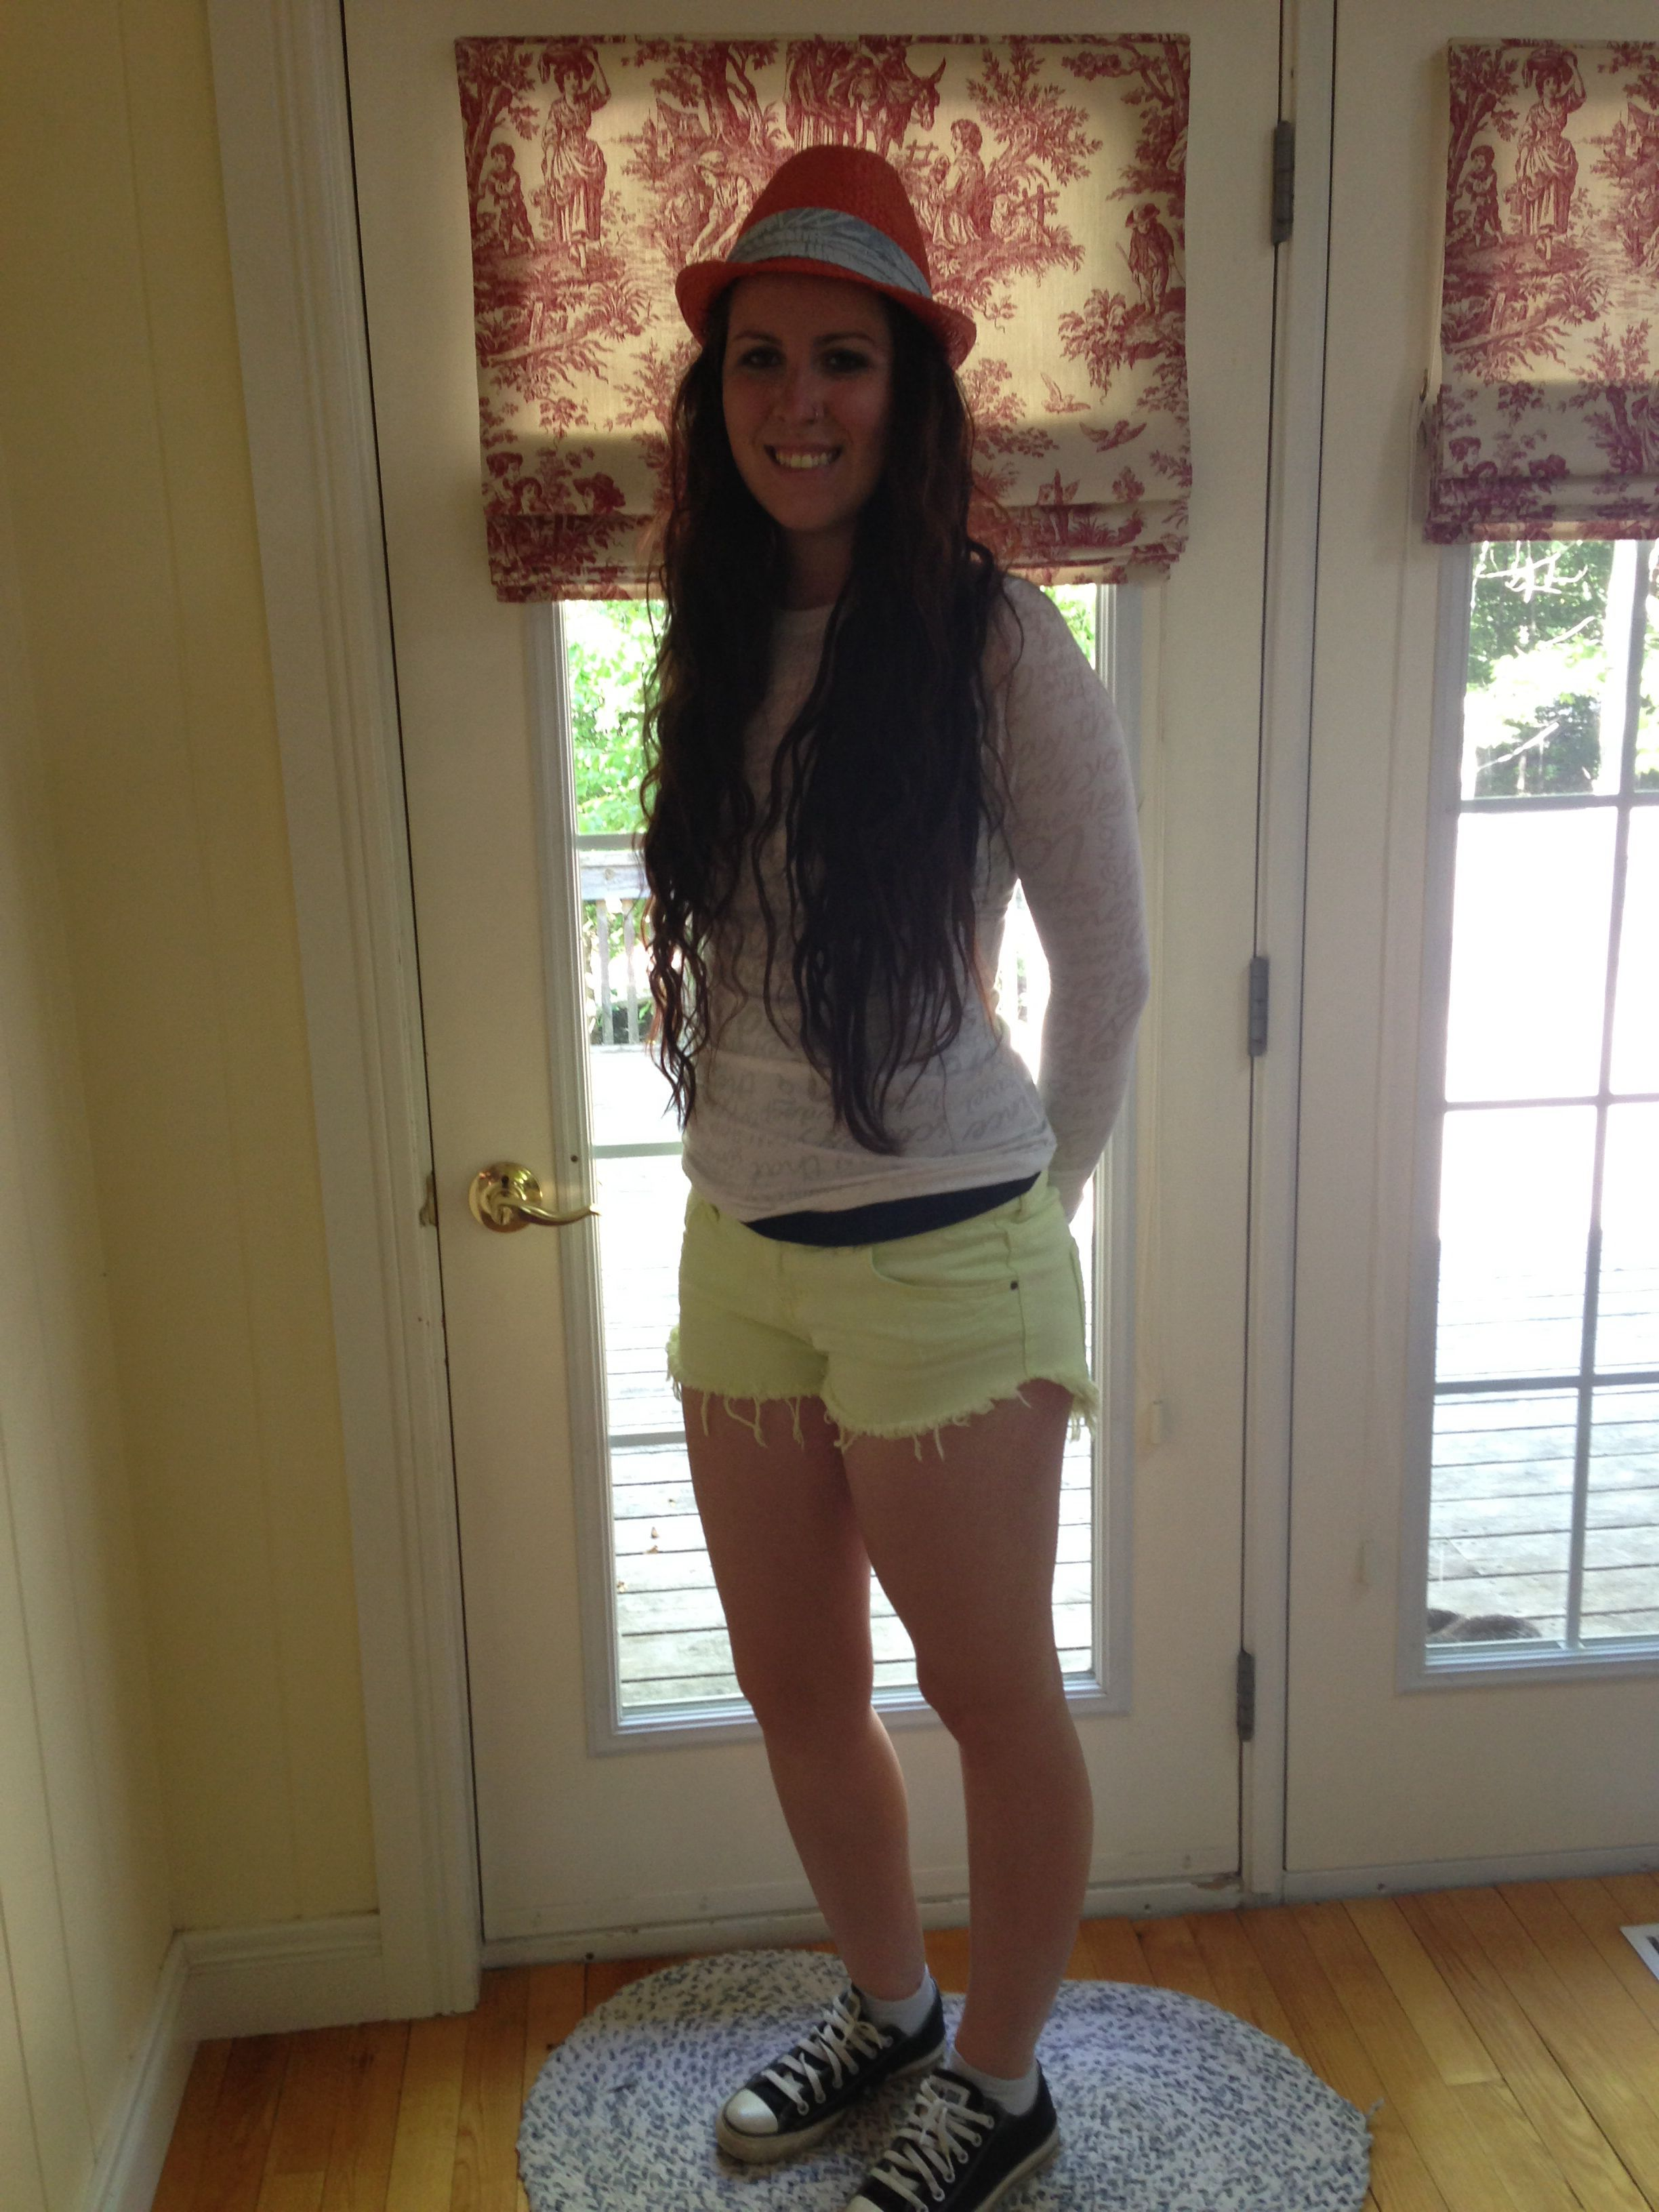 Yellow shorts and white top. Great summer outfit.